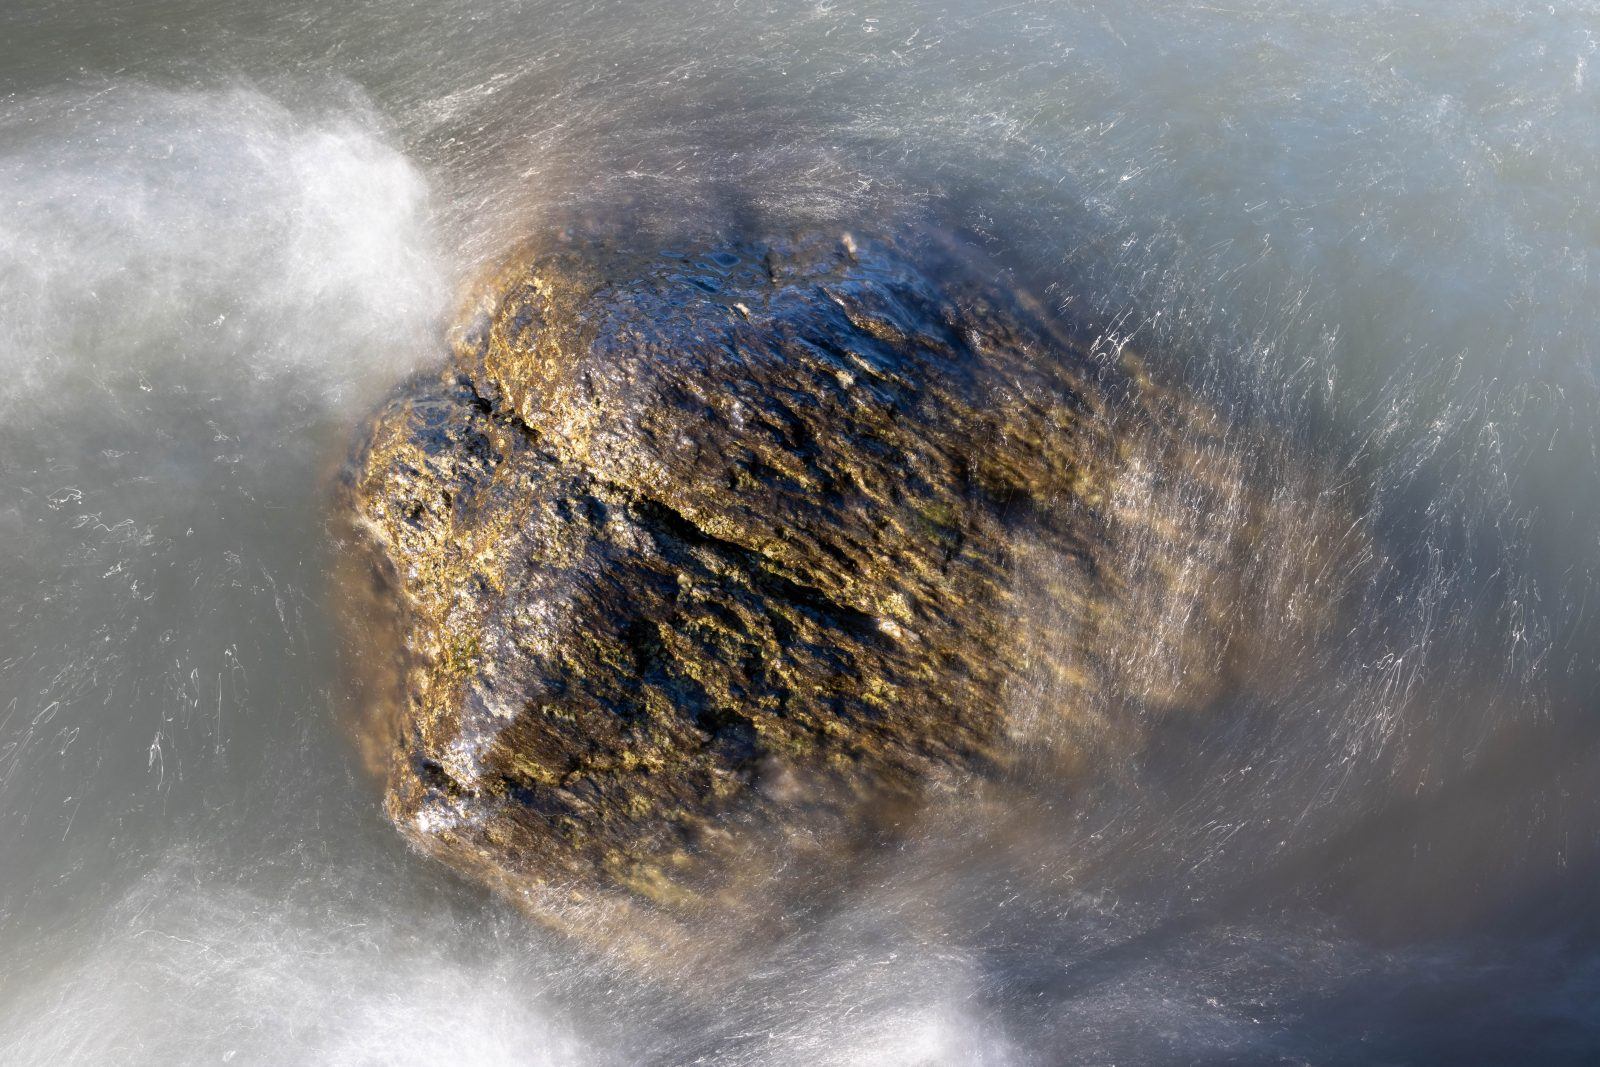 Water over rock